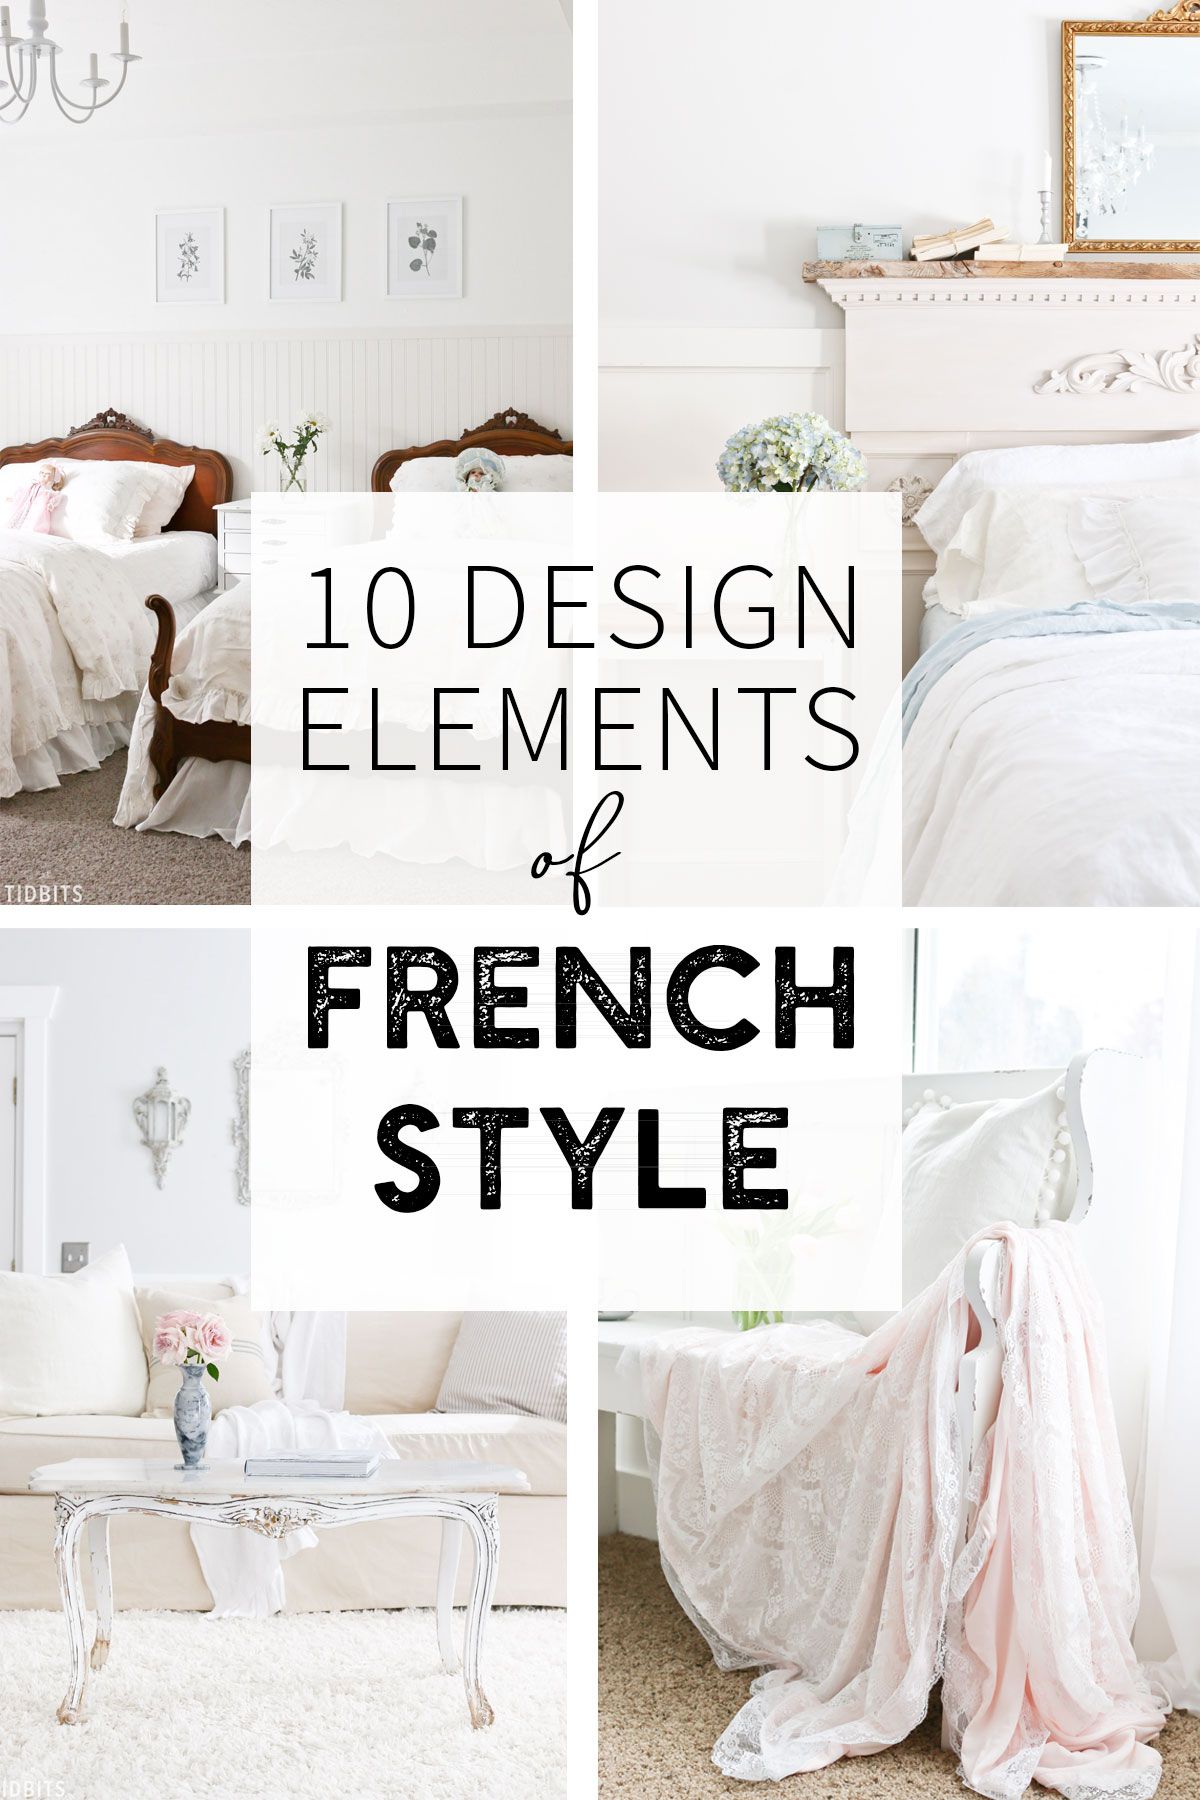 10 design elements of french style